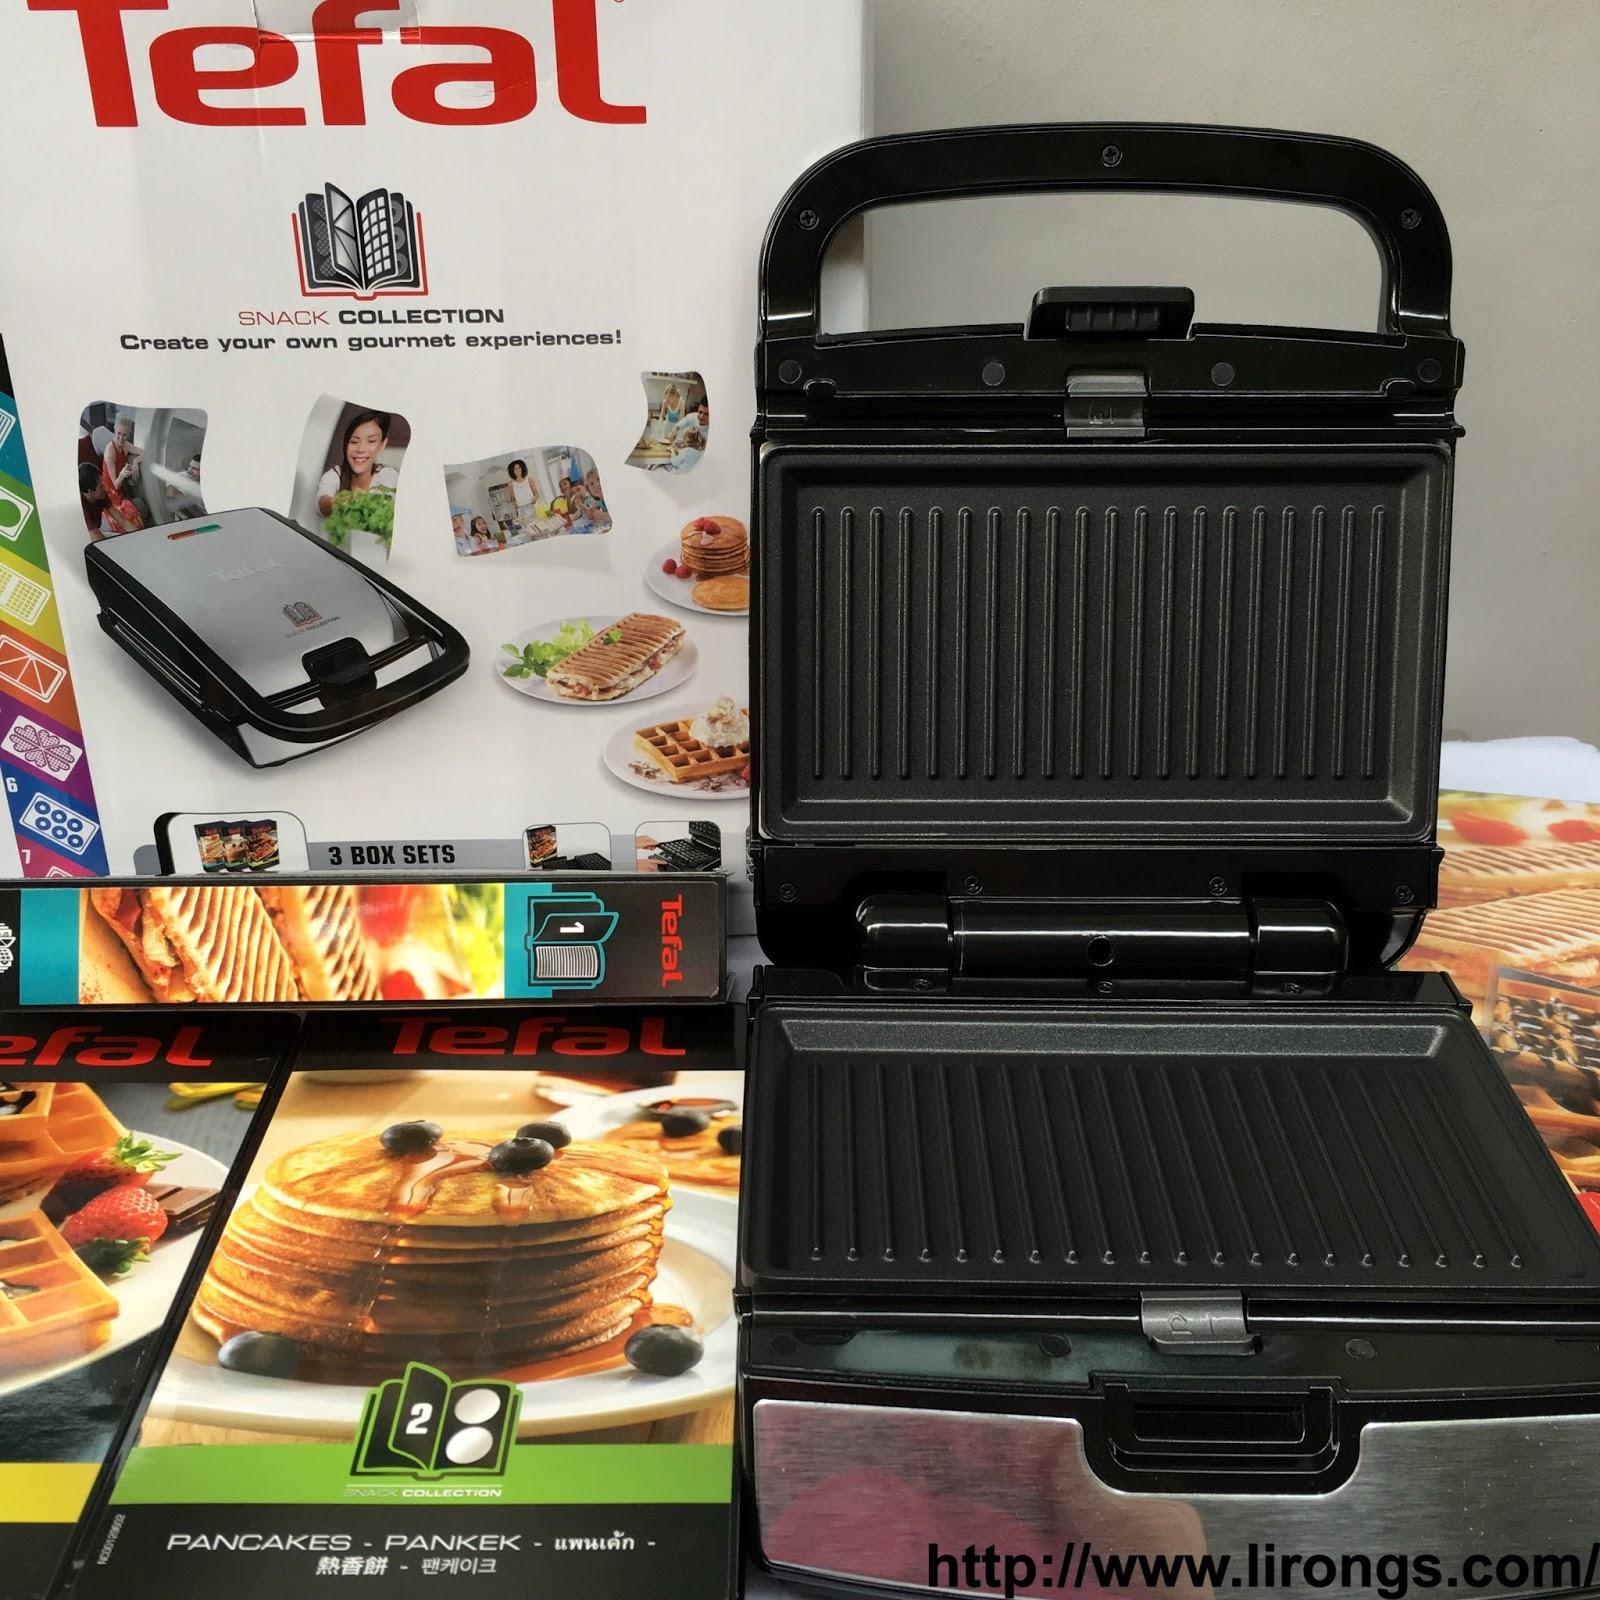 Lirong a singapore food and lifestyle blog review tefal snack collection recipes - Plaque tefal snack collection ...